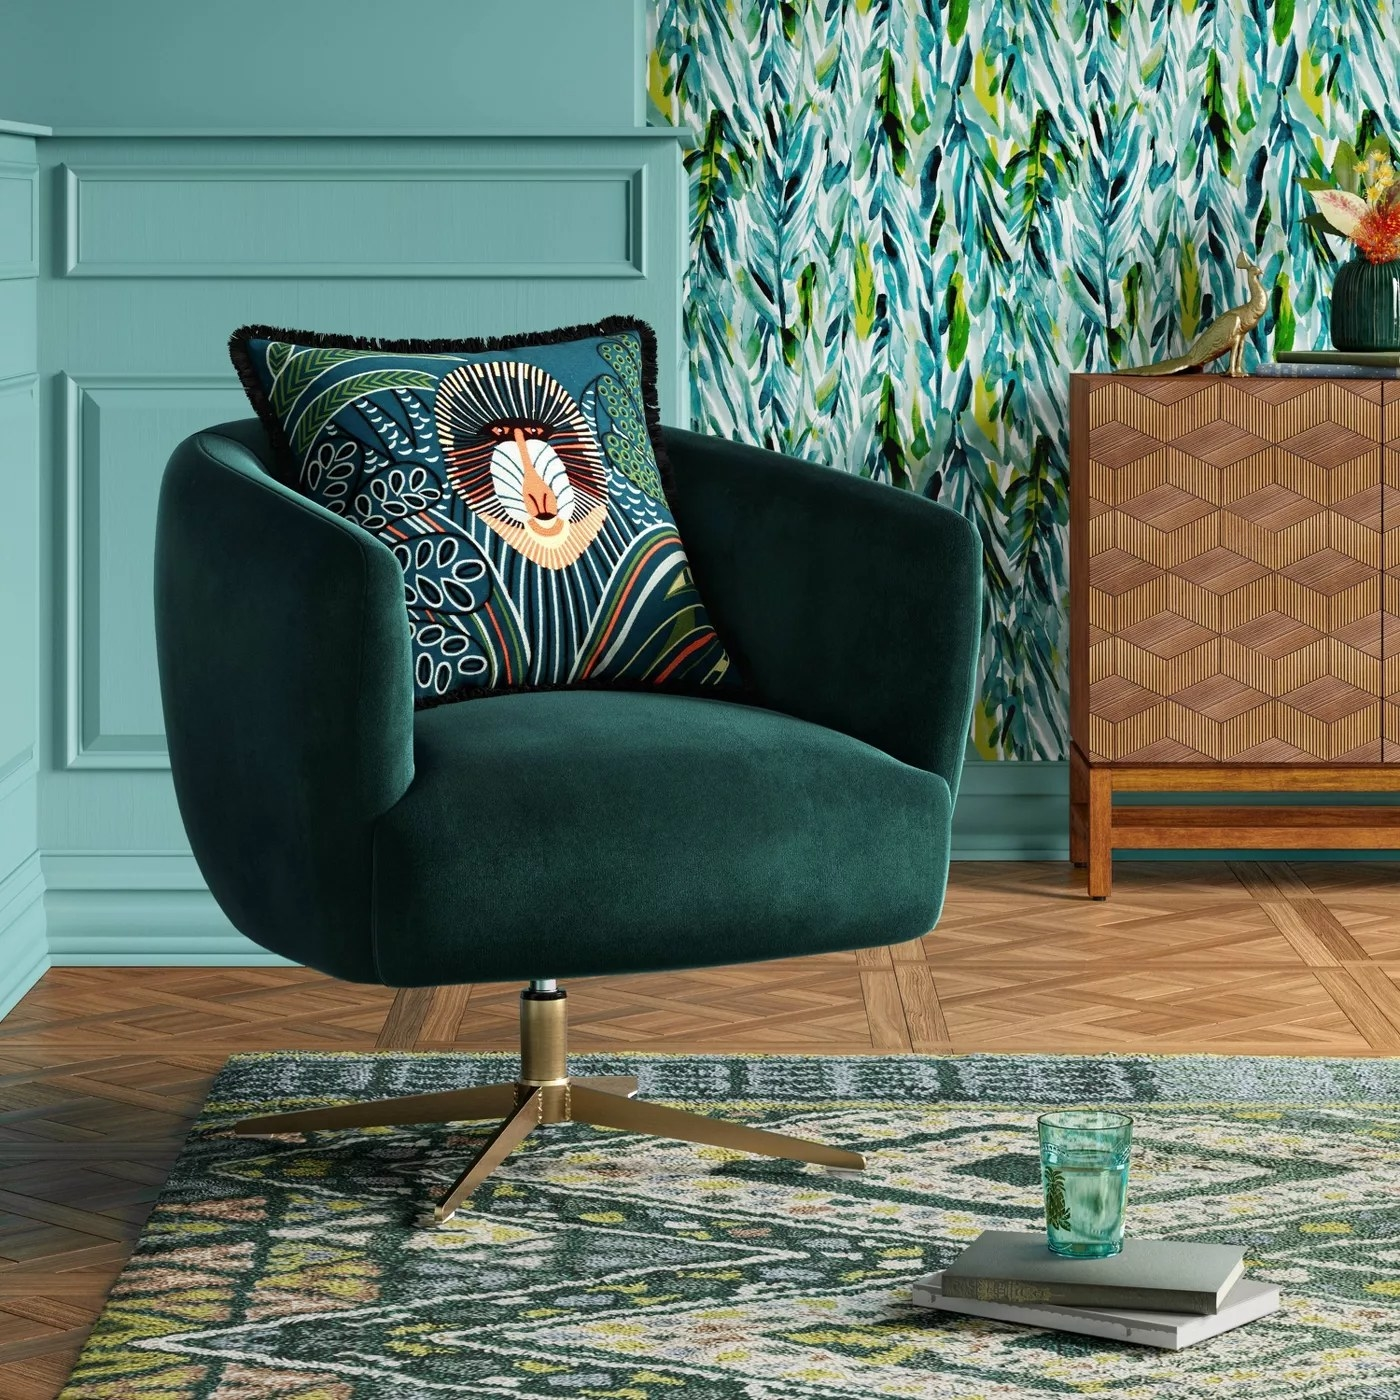 The velvet chair in green